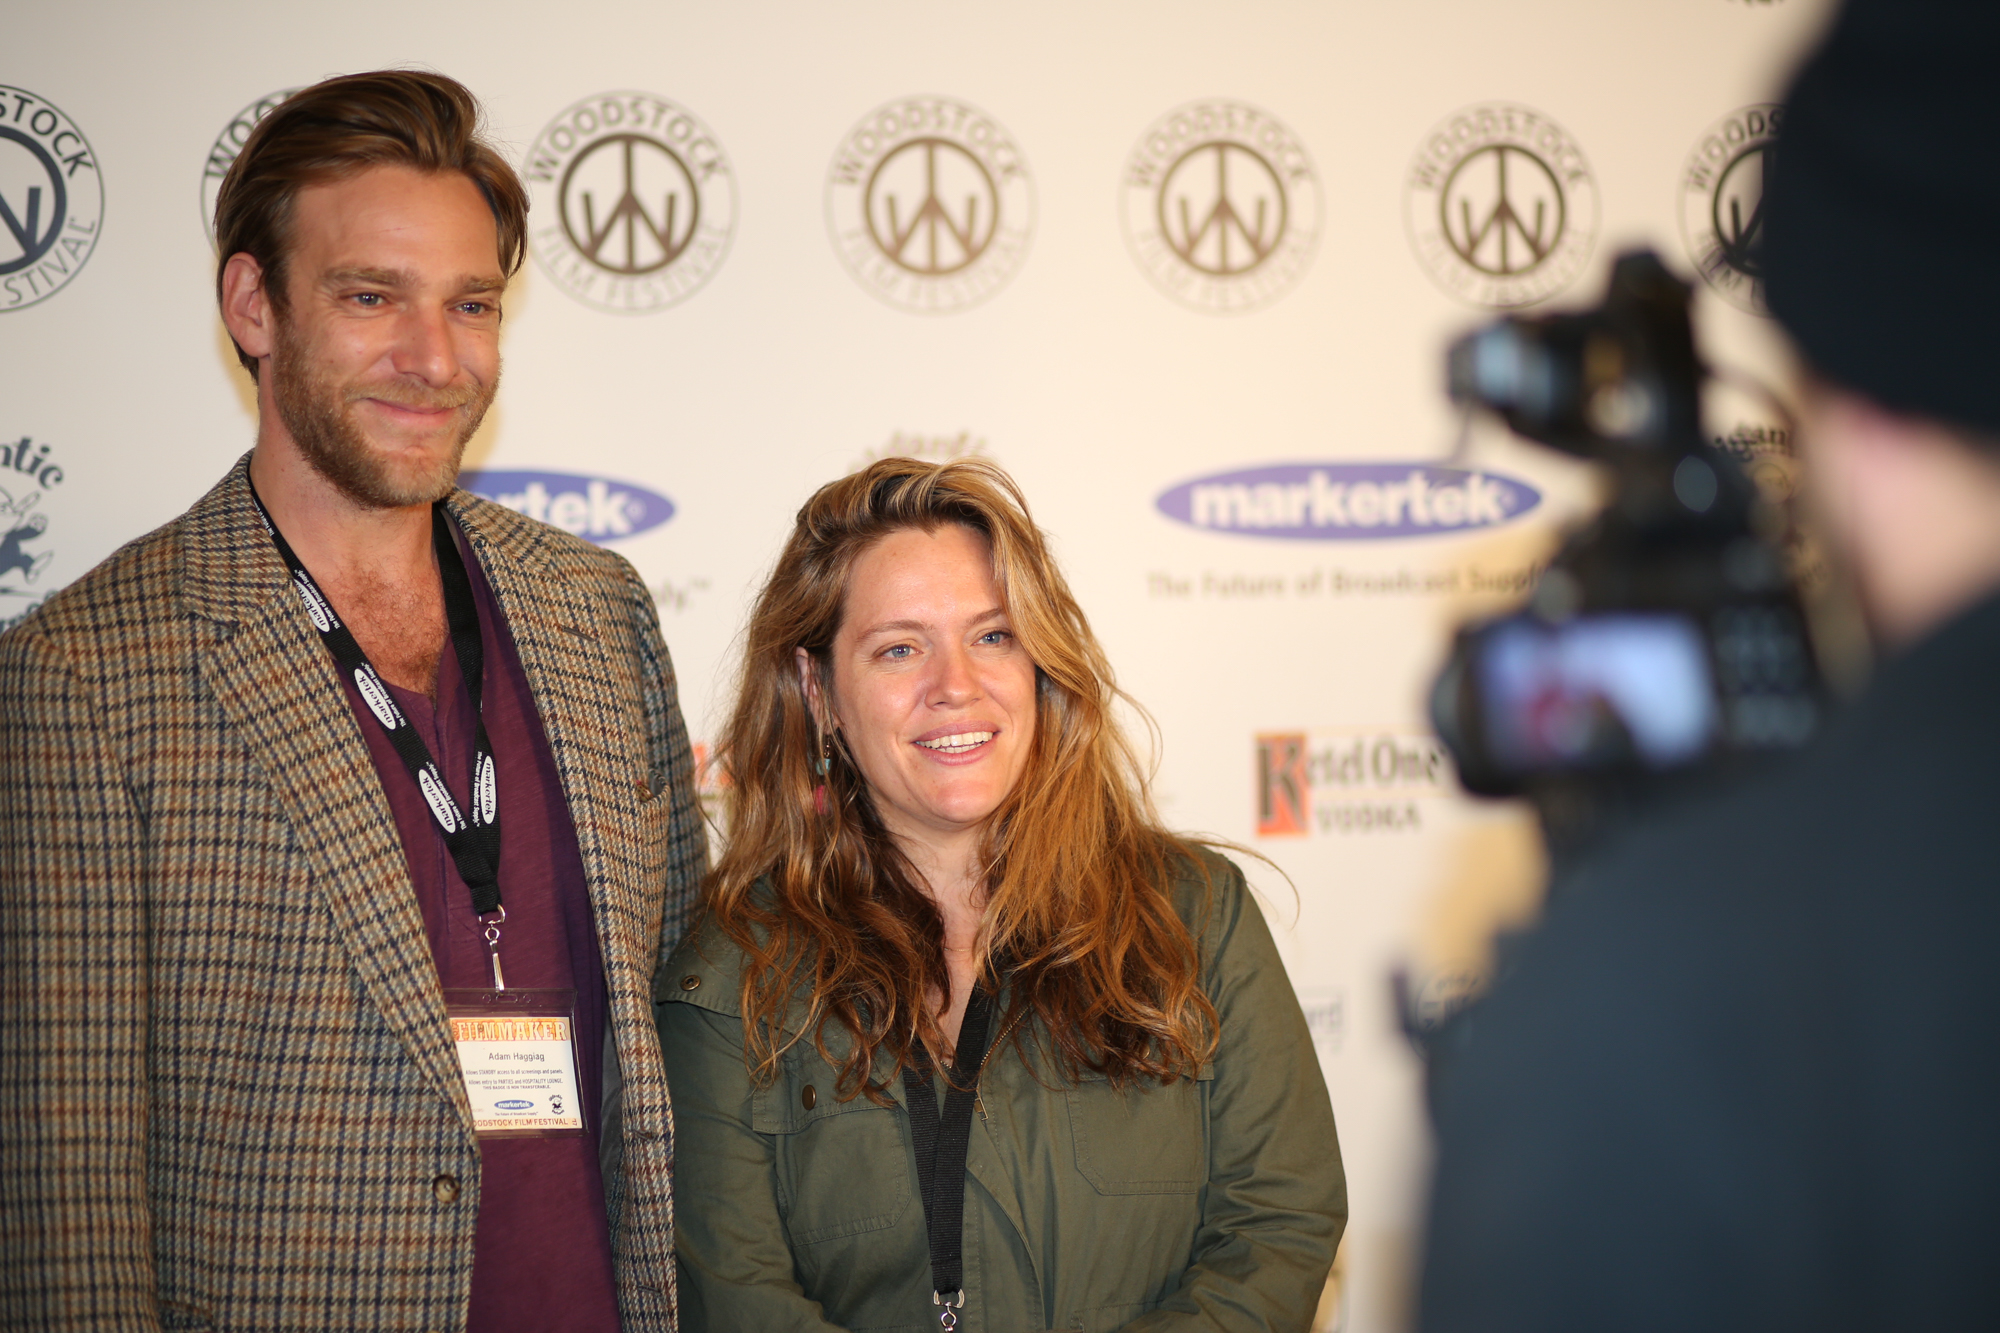 Bombshell: The Hedy Lamarr Story  producer Adam Haggiag and director Alexandra Dean at the 2017 Woodstock Film Festival.